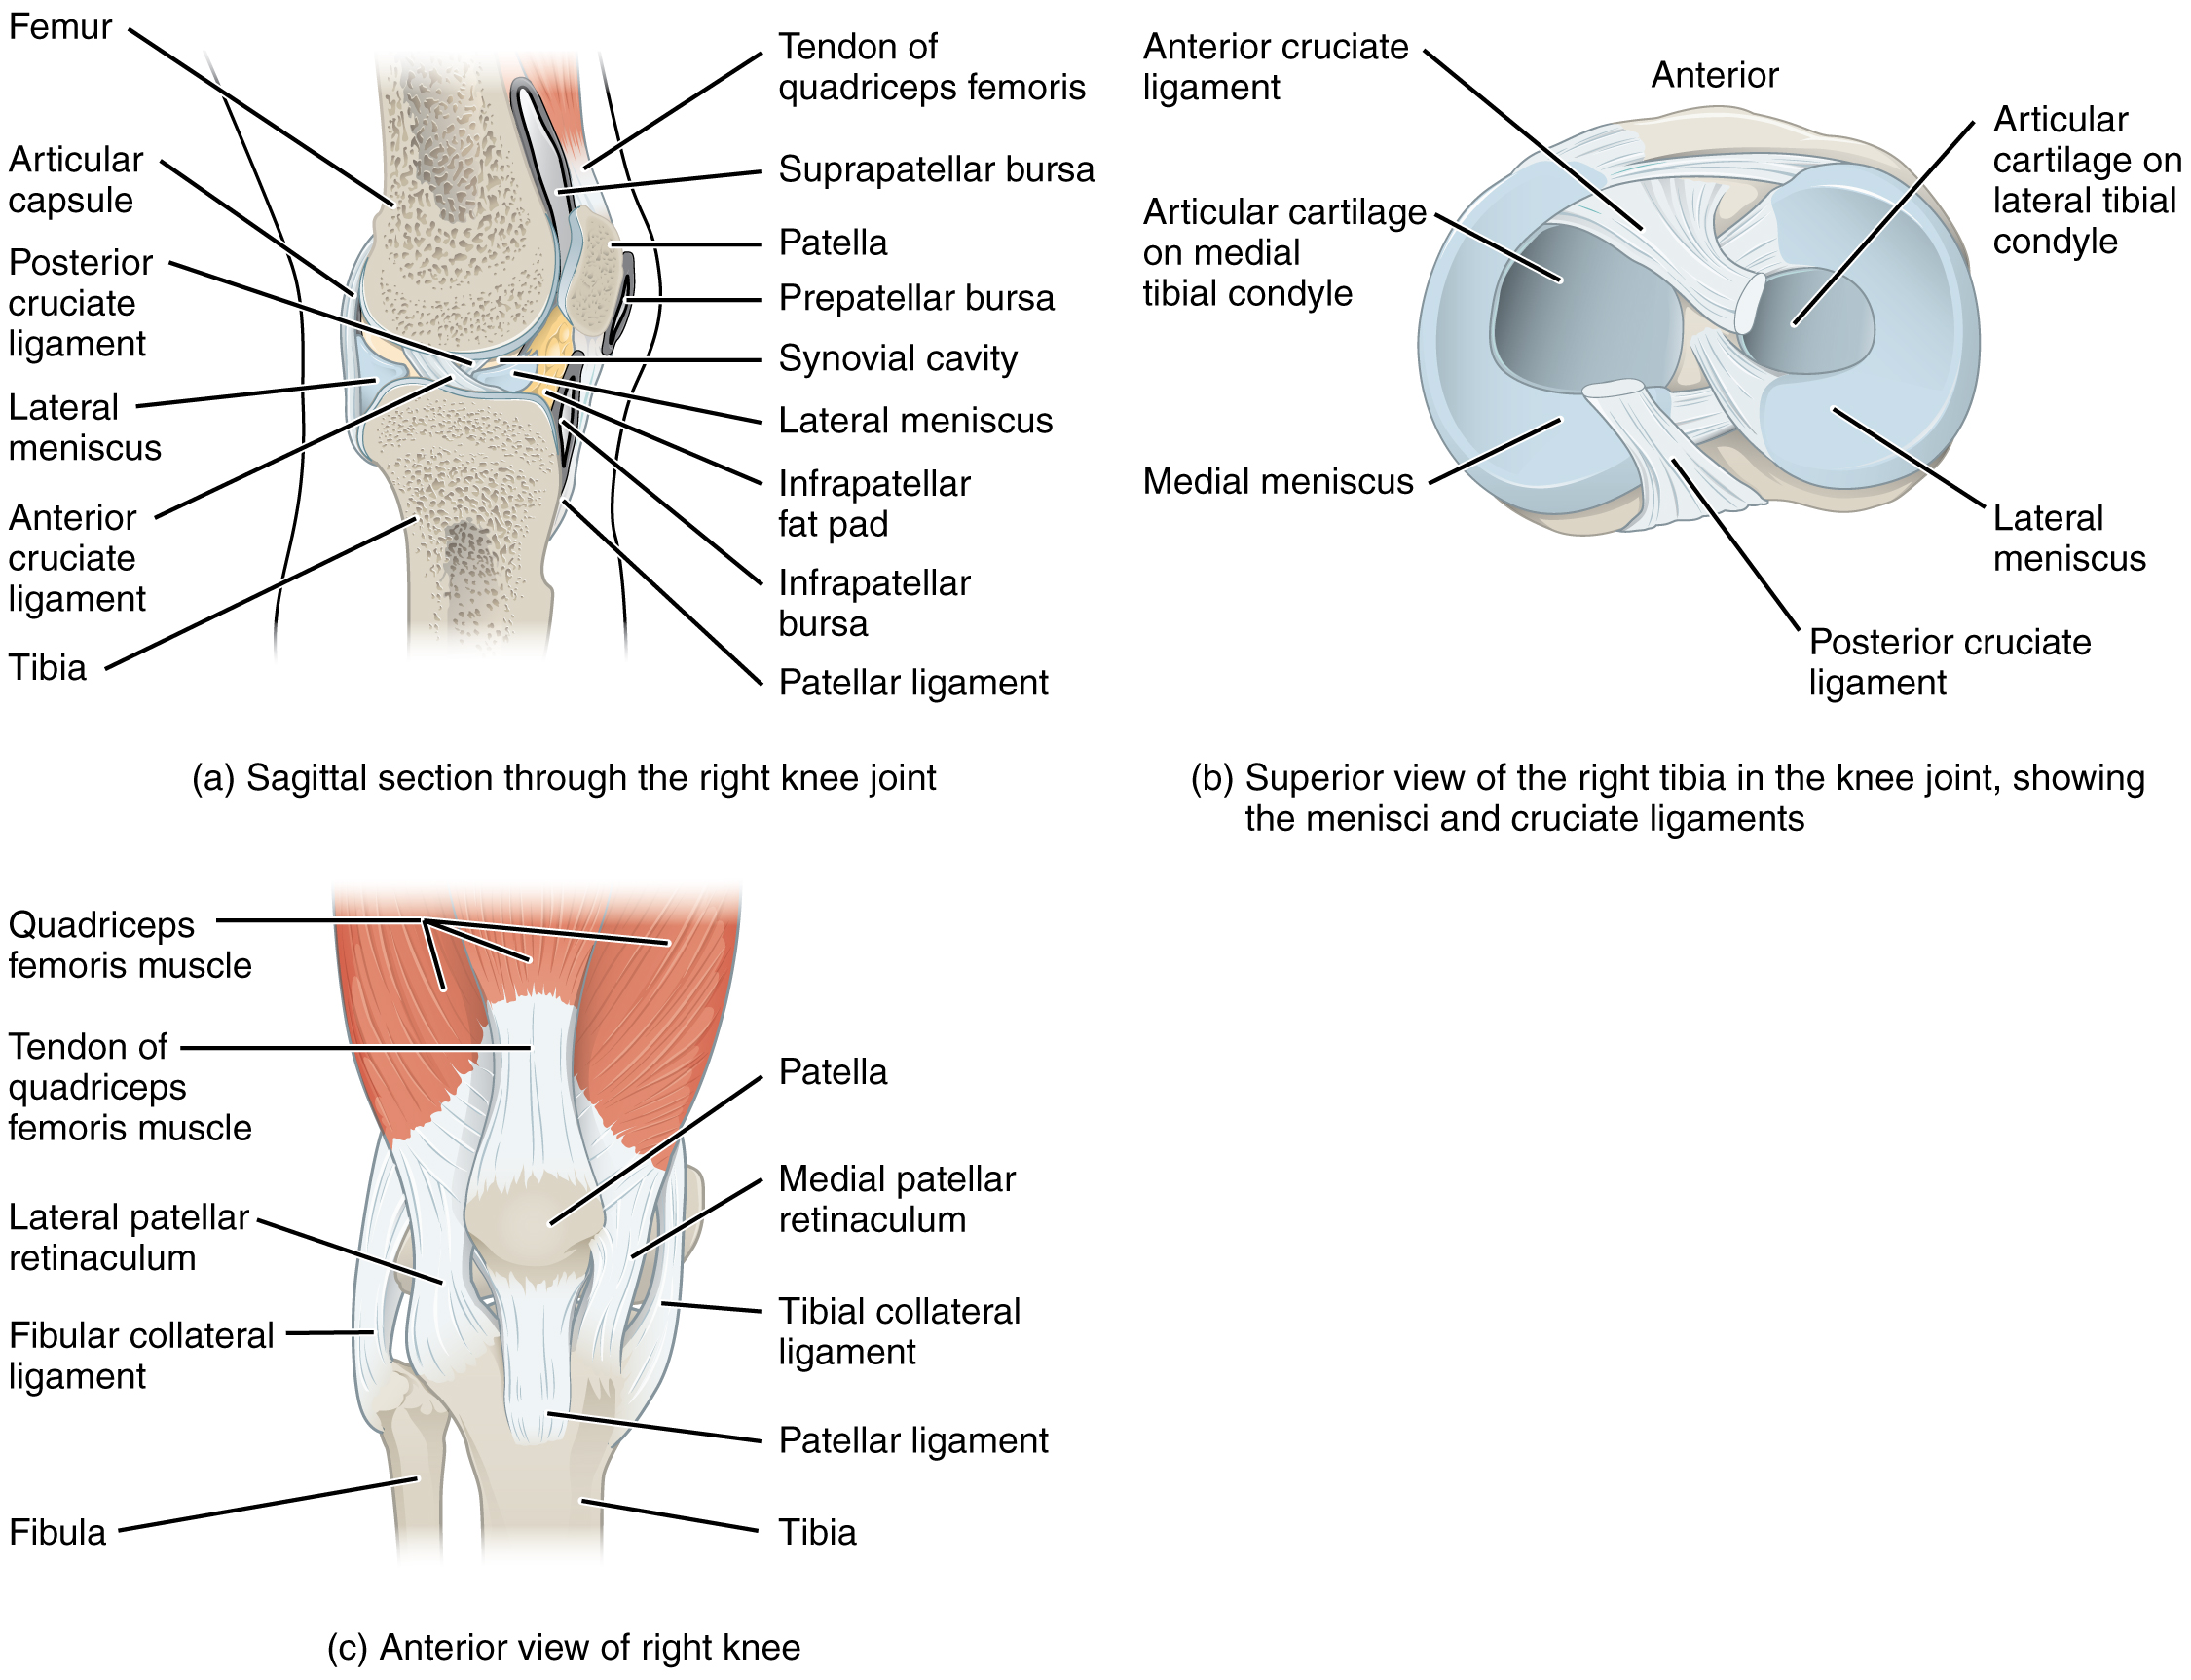 This image shows the different views of the knee joint the top left panel